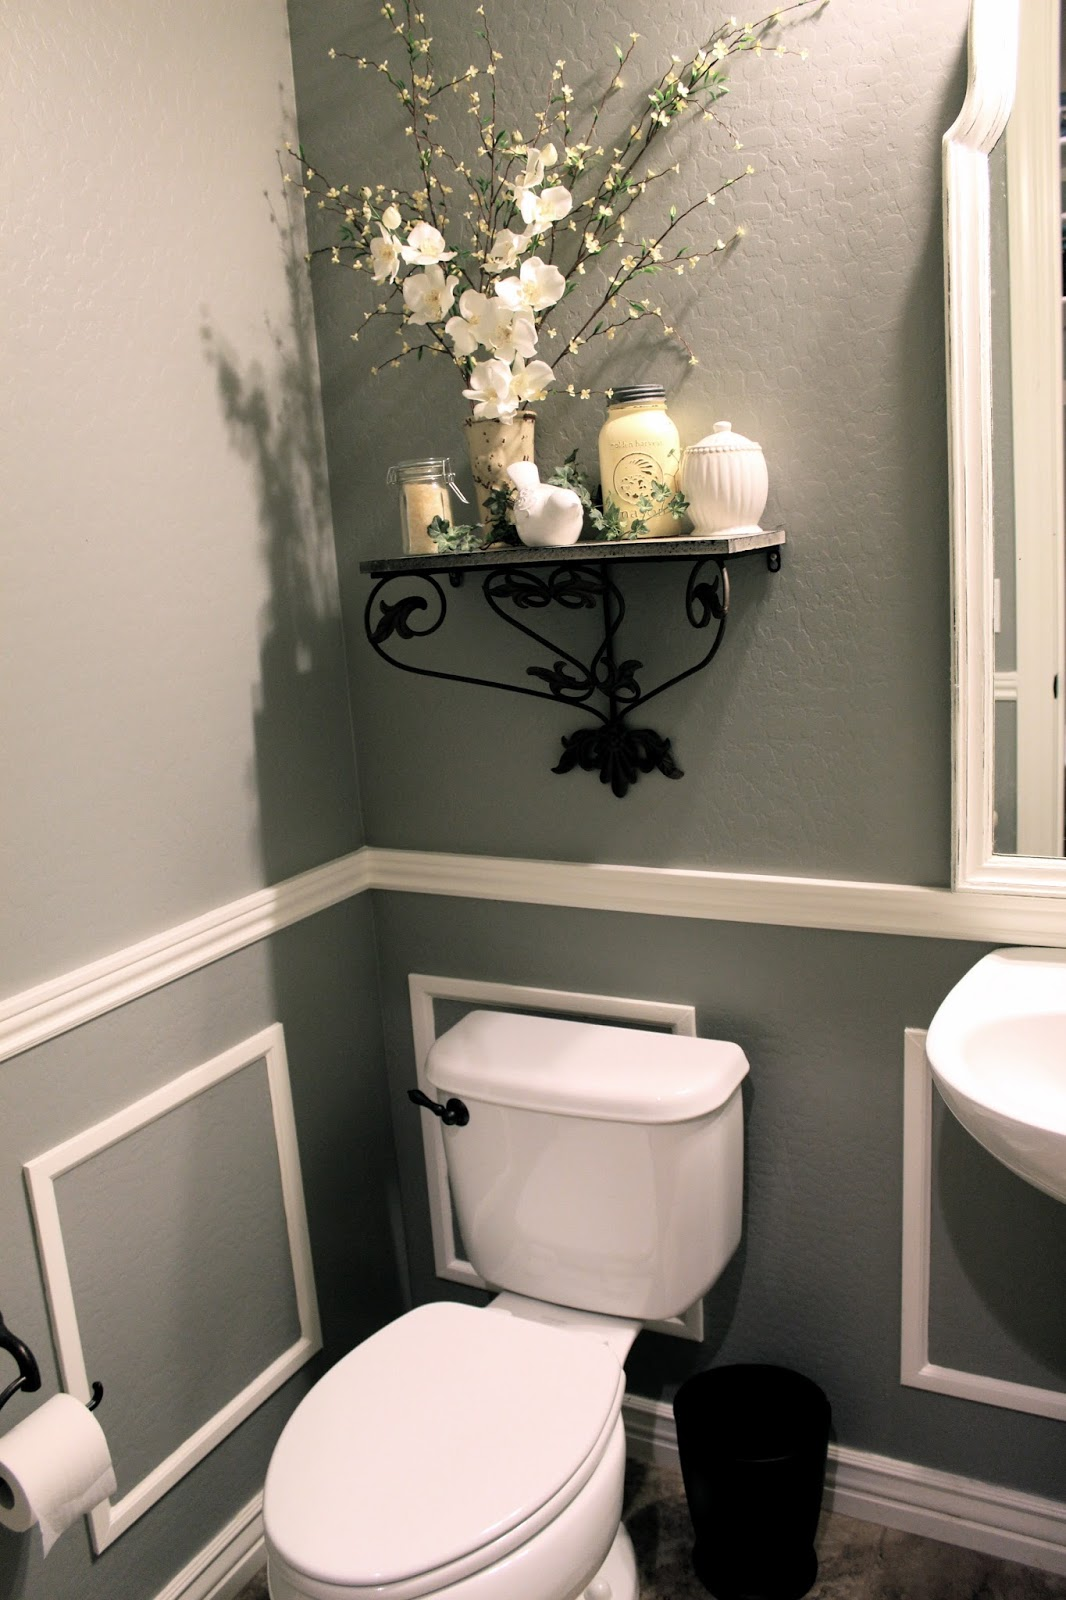 Little bit of paint thrifty thursday bathroom reveal for Bathroom designs paint